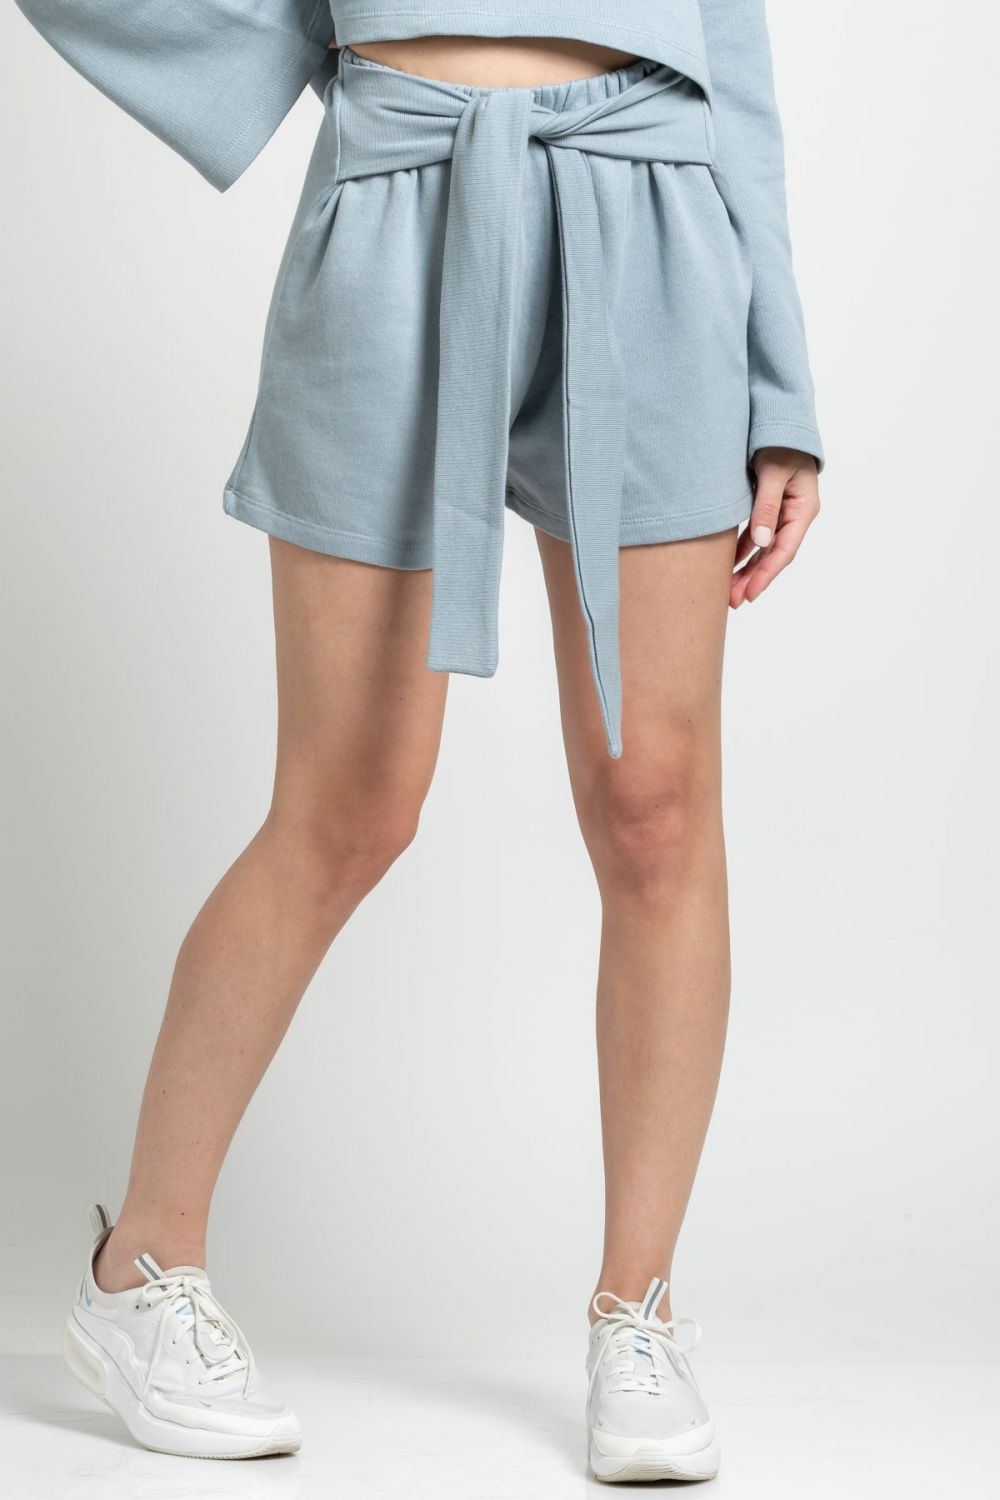 Wrap Front baby blue shorts